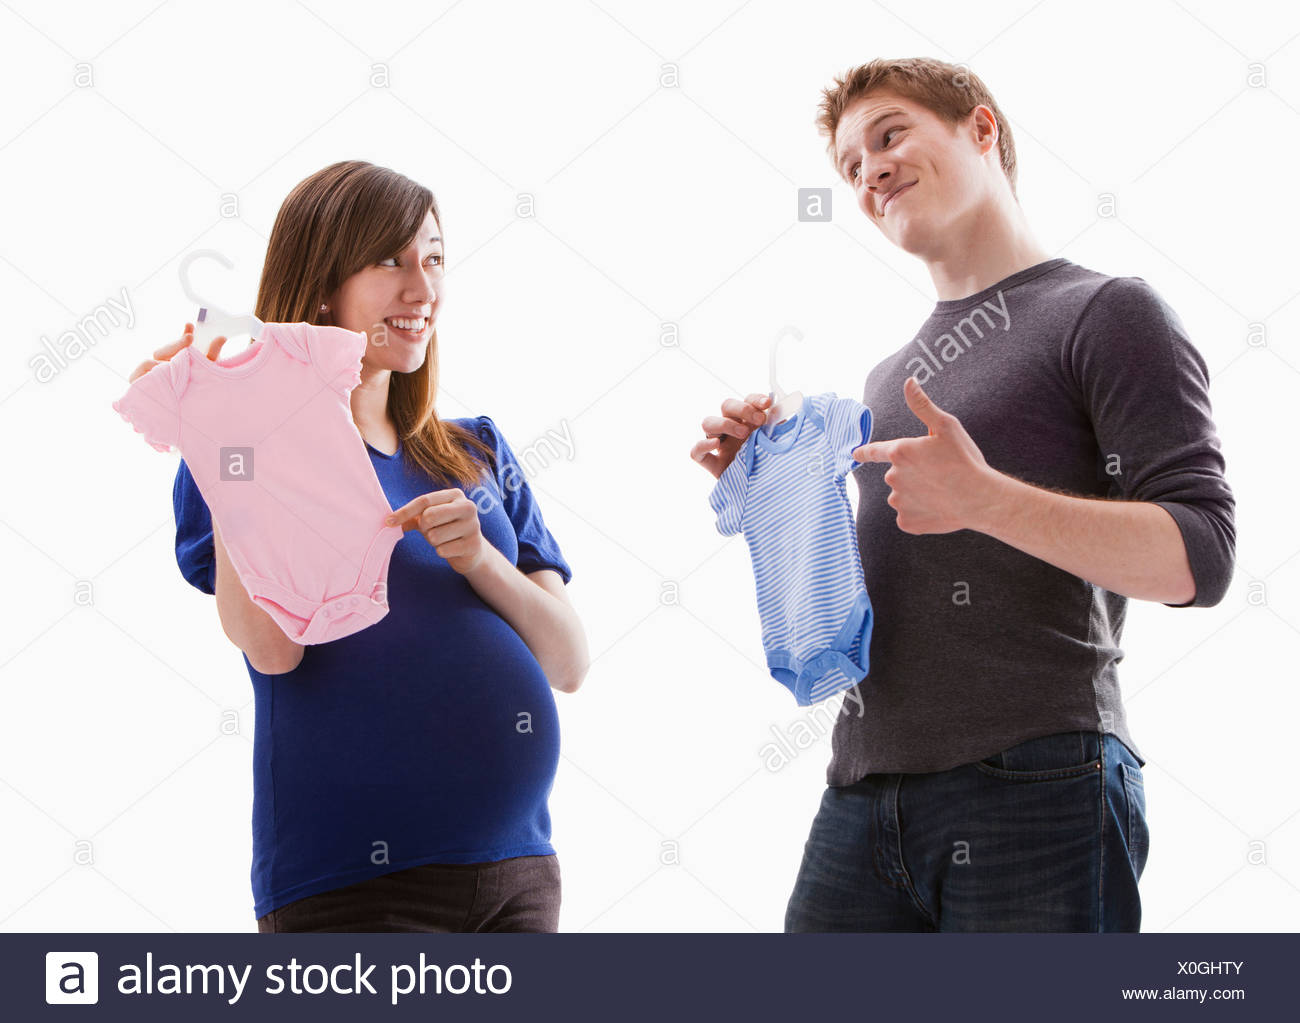 Studio Shot of young couple holding onesie Stock Photo